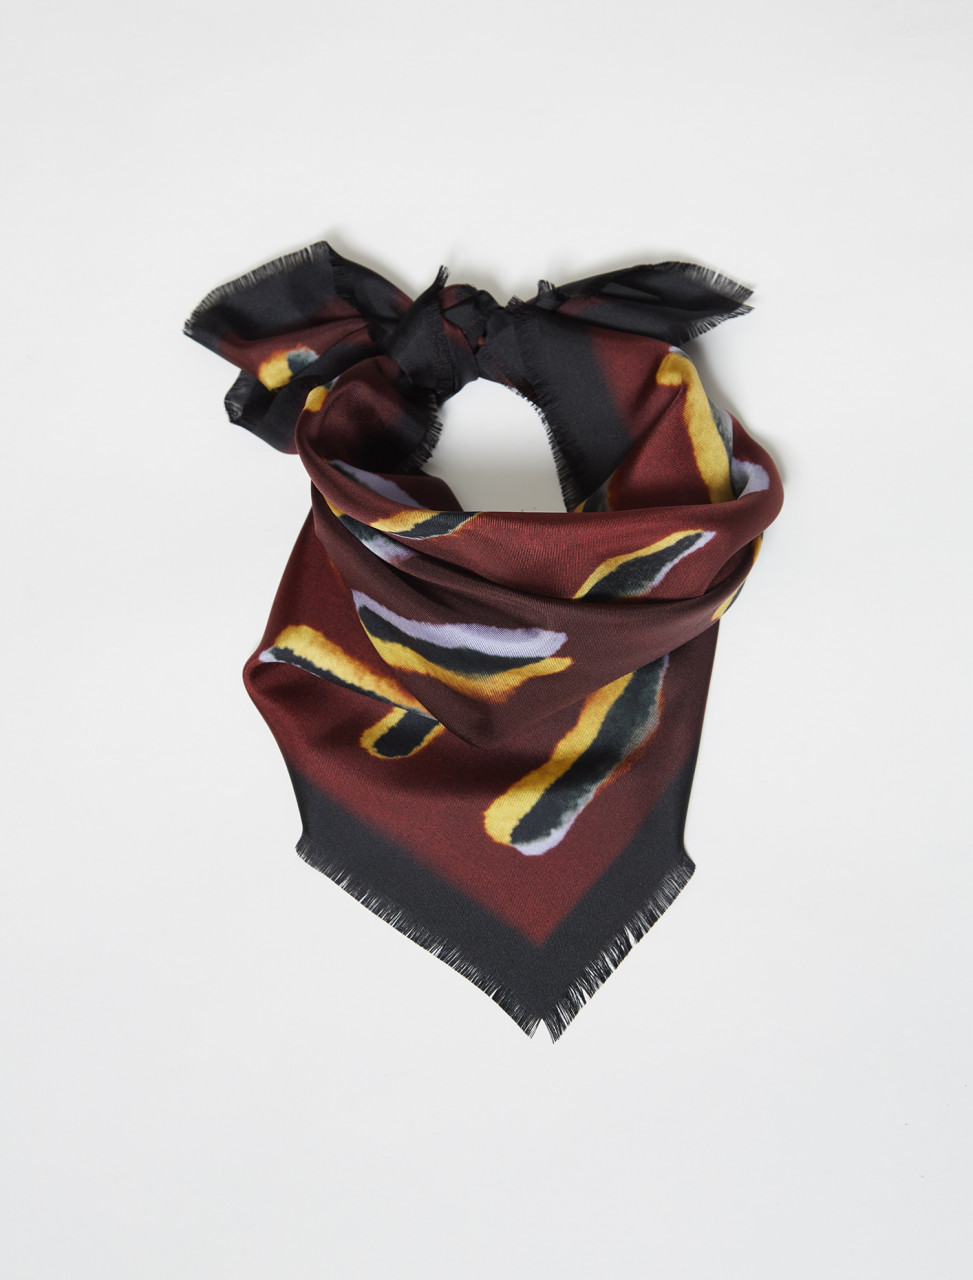 211-21310-004-358 DRIES VAN NOTEN LEN LYE PRINT SCARF IN BURGUNDY